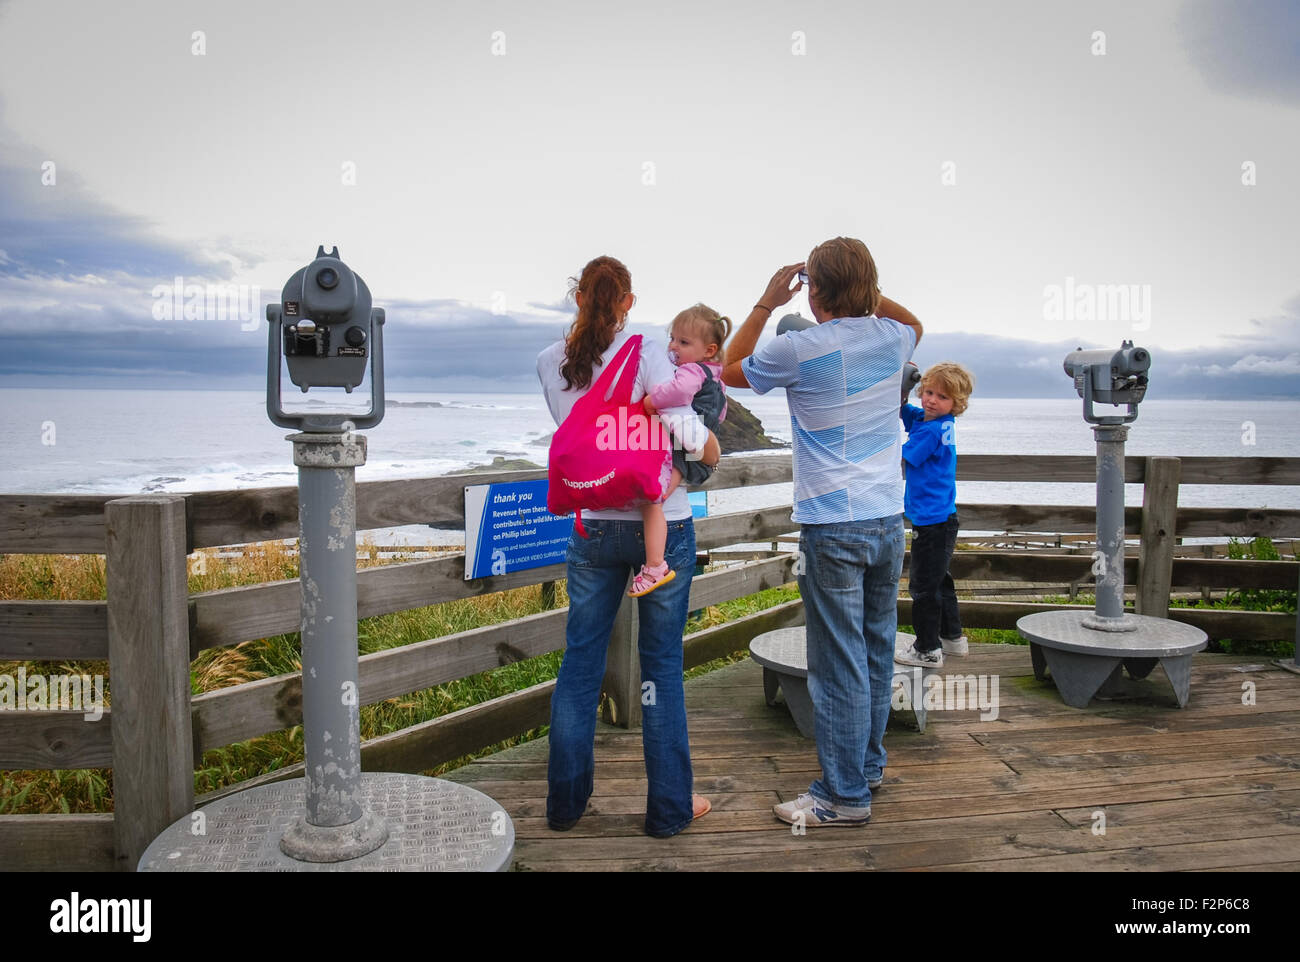 A family enjoys beach scenery from the viewing platform of Nobbies Centre. Stock Photo